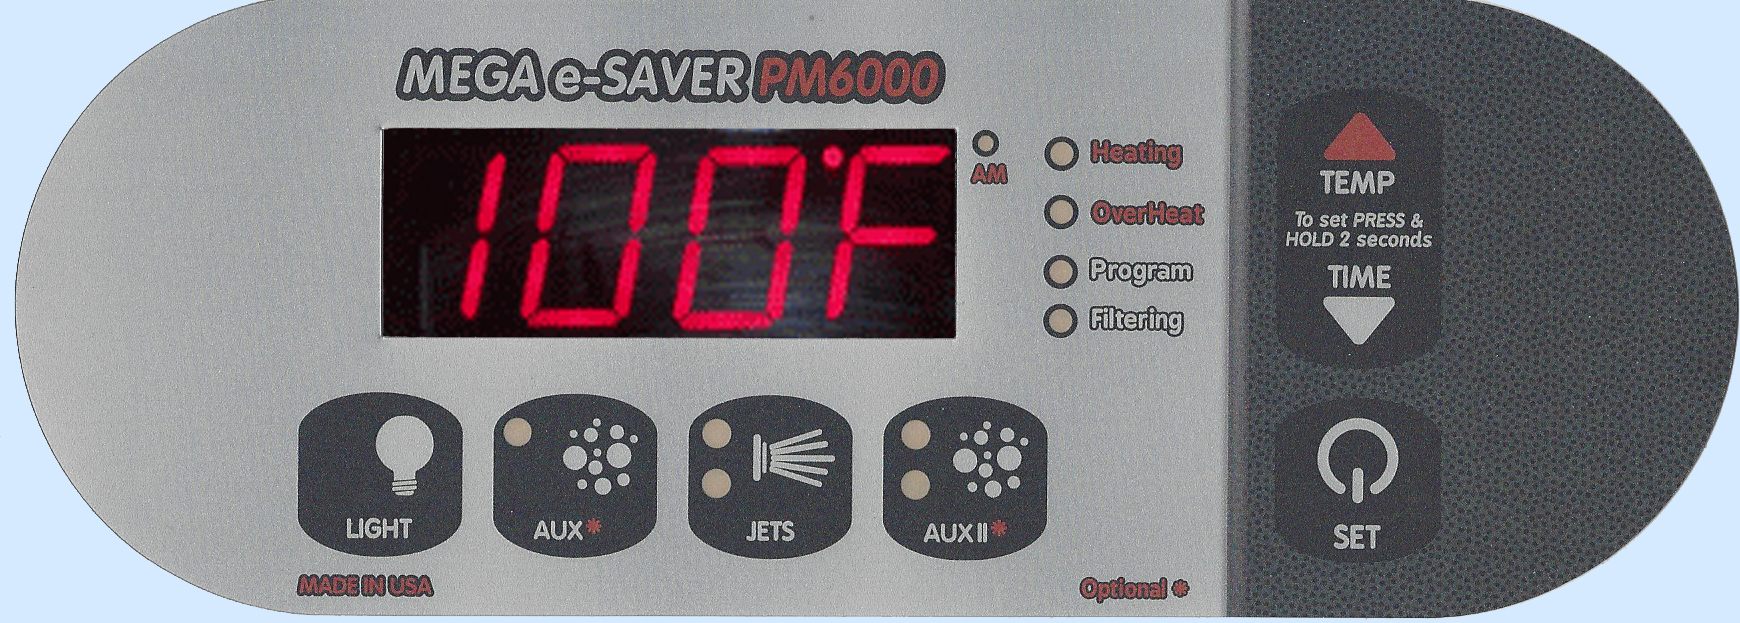 PM6000 Digital Top Side Control